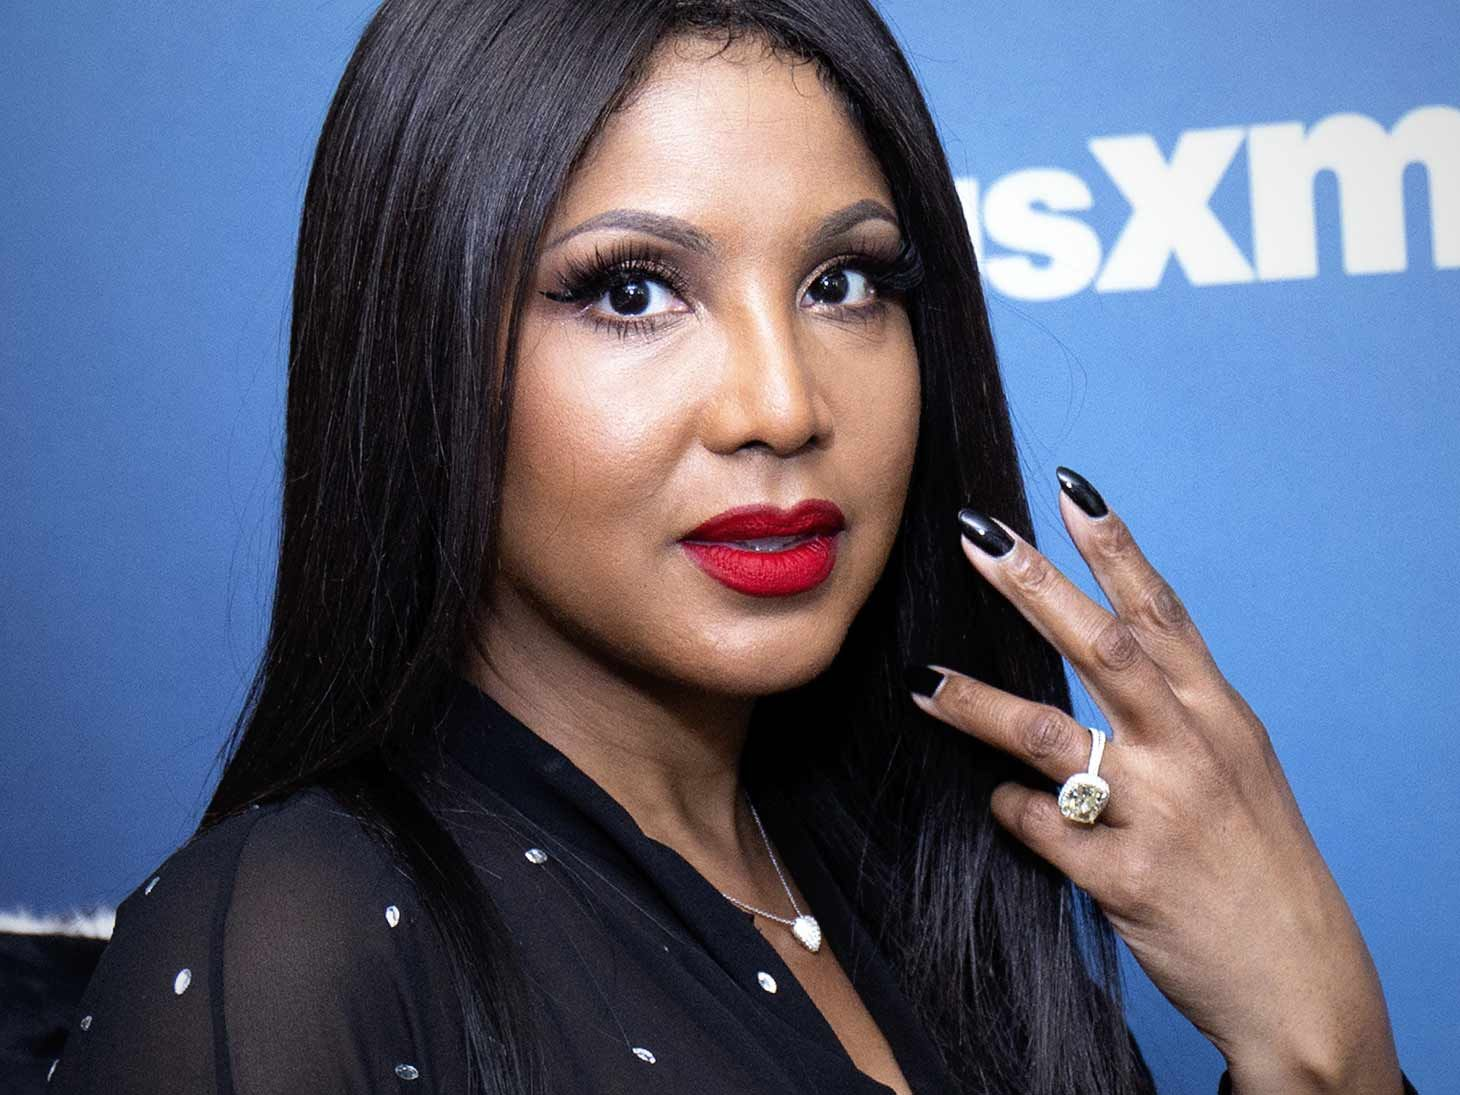 toni-braxton-shows-off-her-beach-body-check-out-her-toned-figure-here